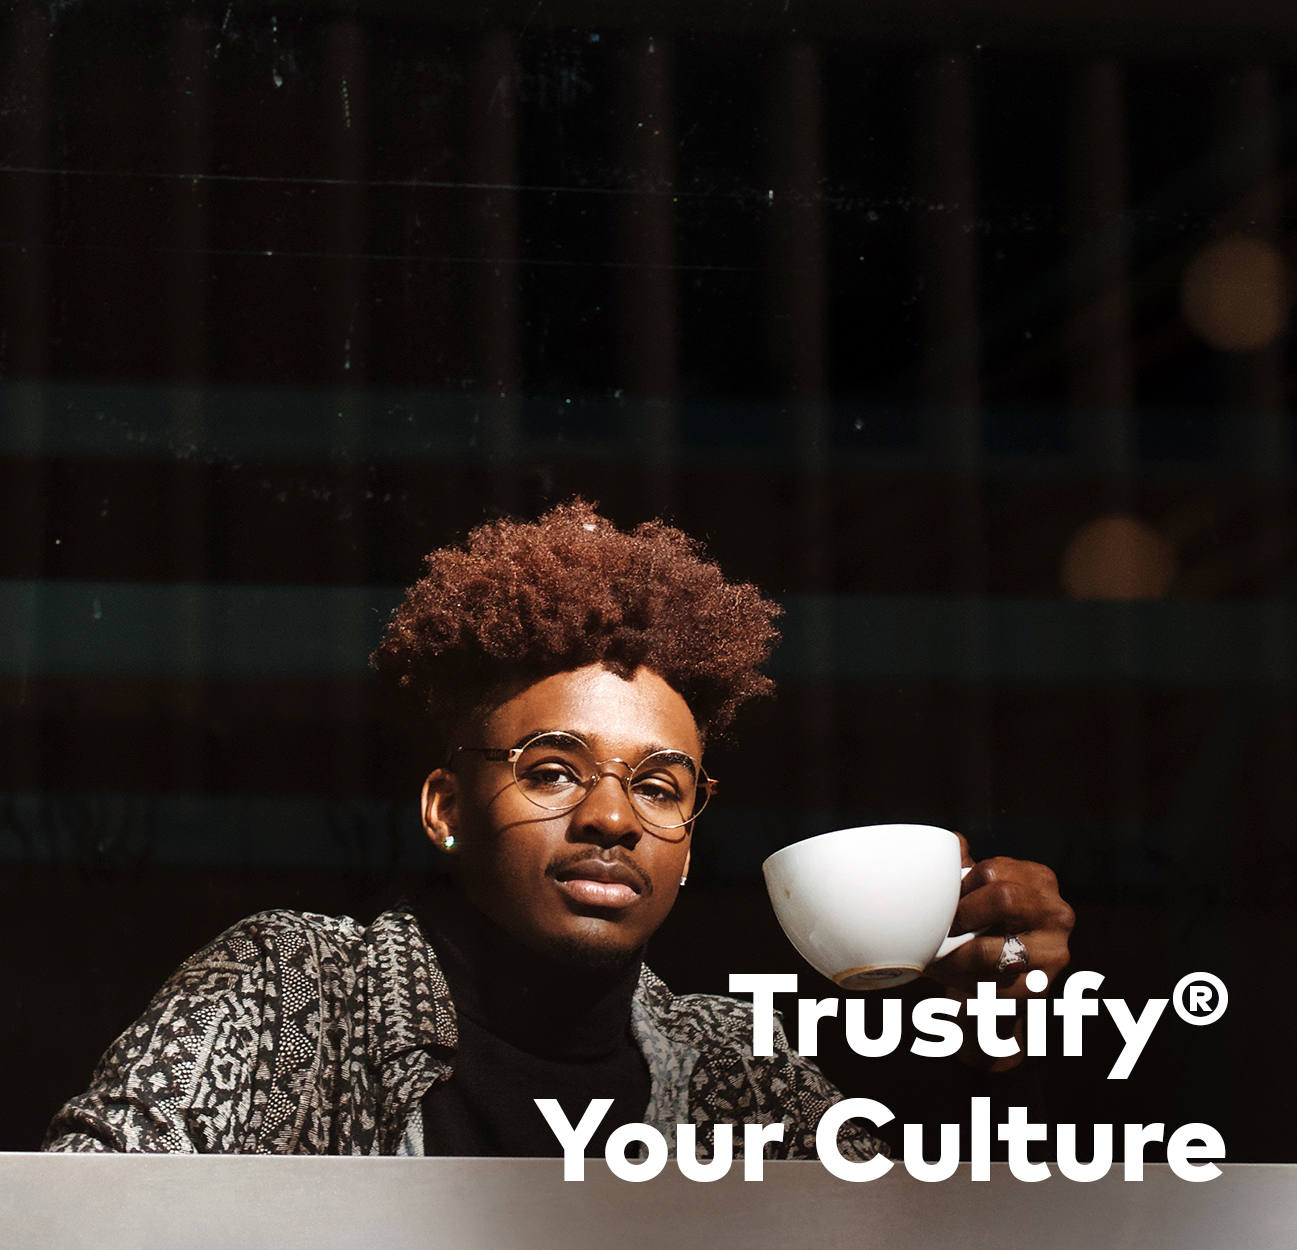 Mext_Consulting_Firm_Melbourne_Trust_Trustify_Your_Culture.jpg